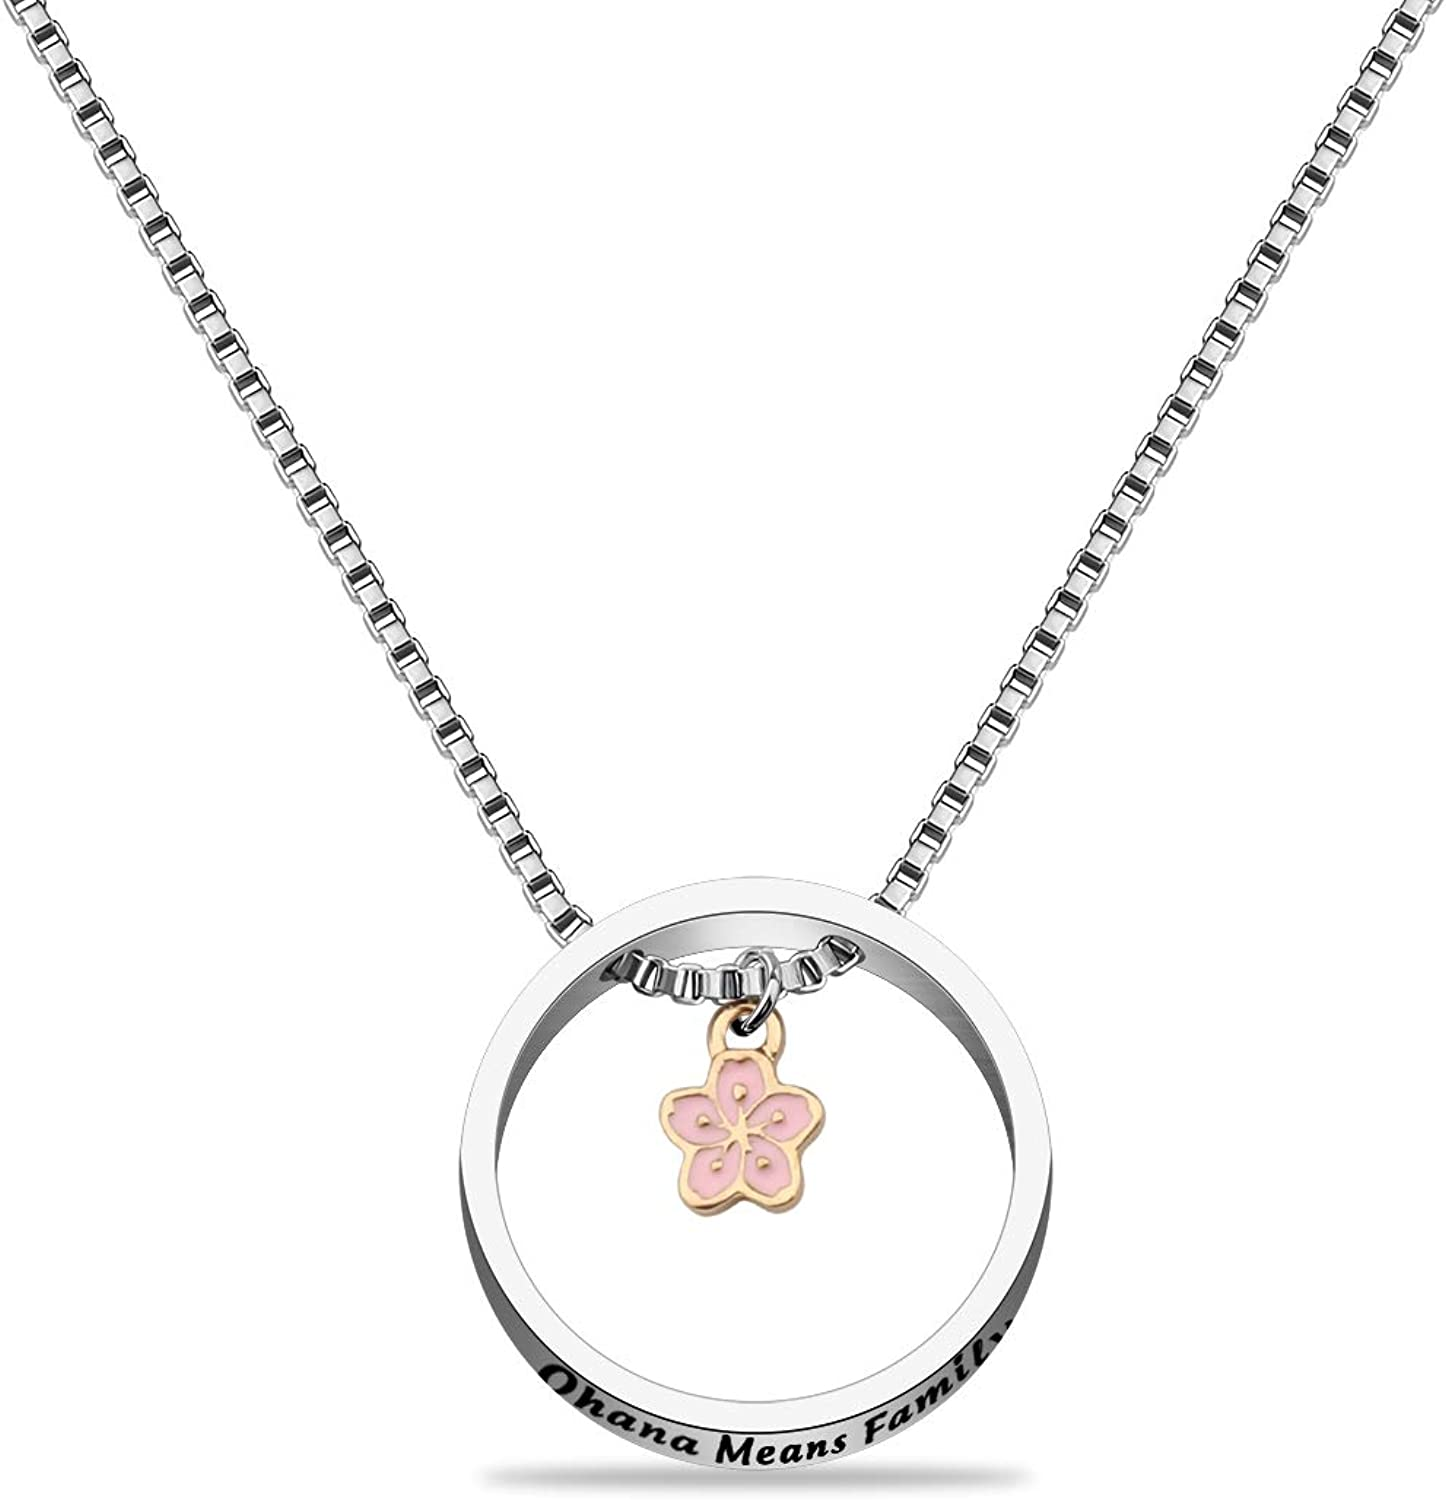 WUSUANED Ohana Means Family Hibiscus Tampa Mall Necklace Je Flower 4 years warranty Hawaiian